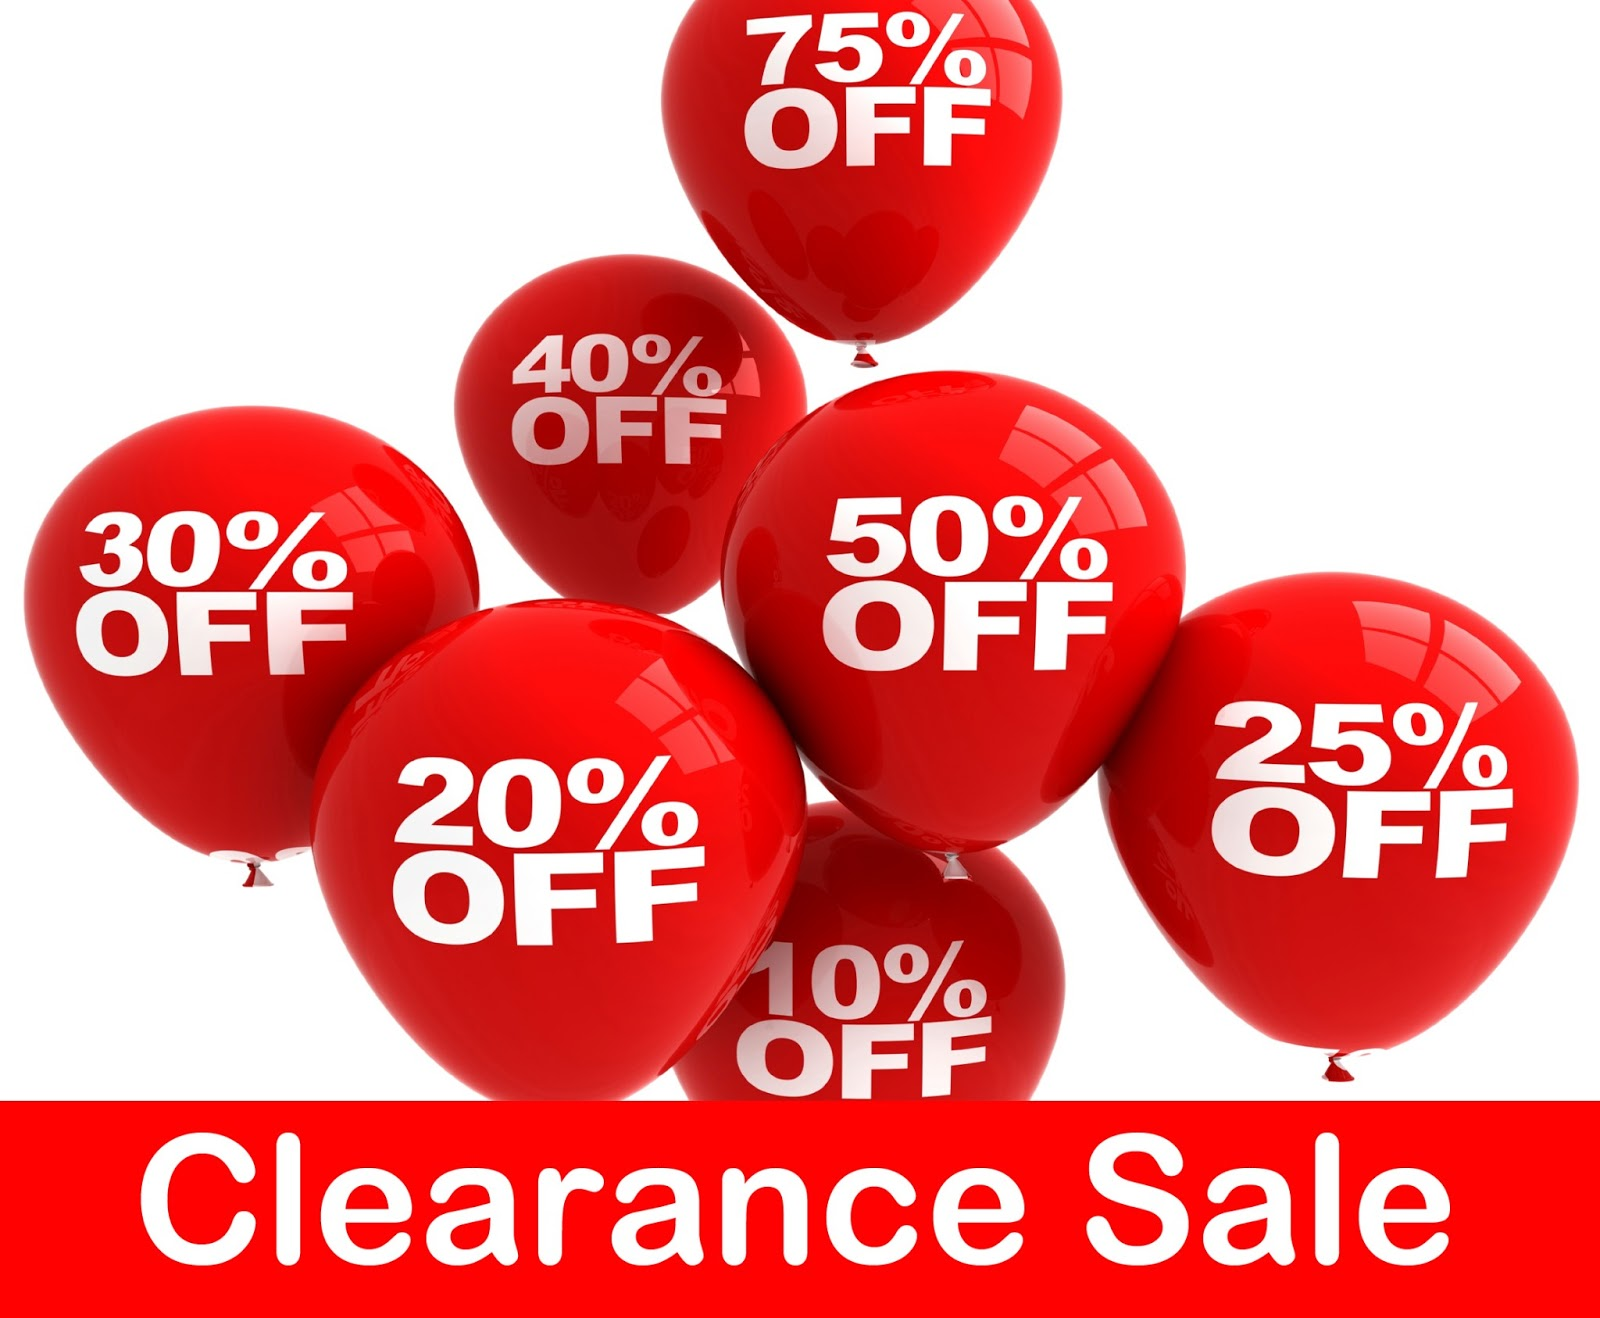 7 Reasons to Avoid End of Season Clearance Sales